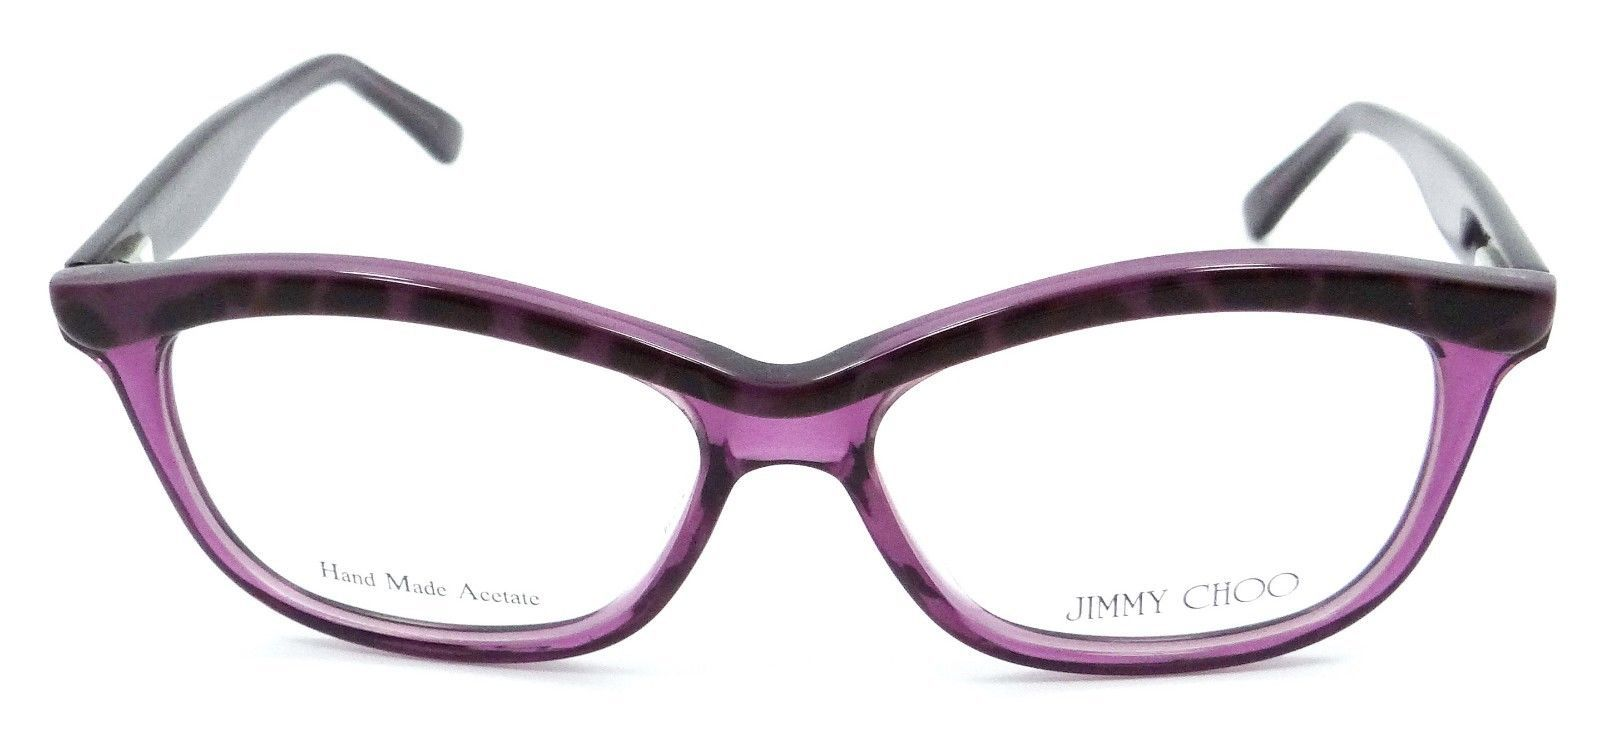 93edd5e149 Jimmy Choo Rx Eyeglasses Frames JC 69 XC1 51-14-135 Panther Violet Made